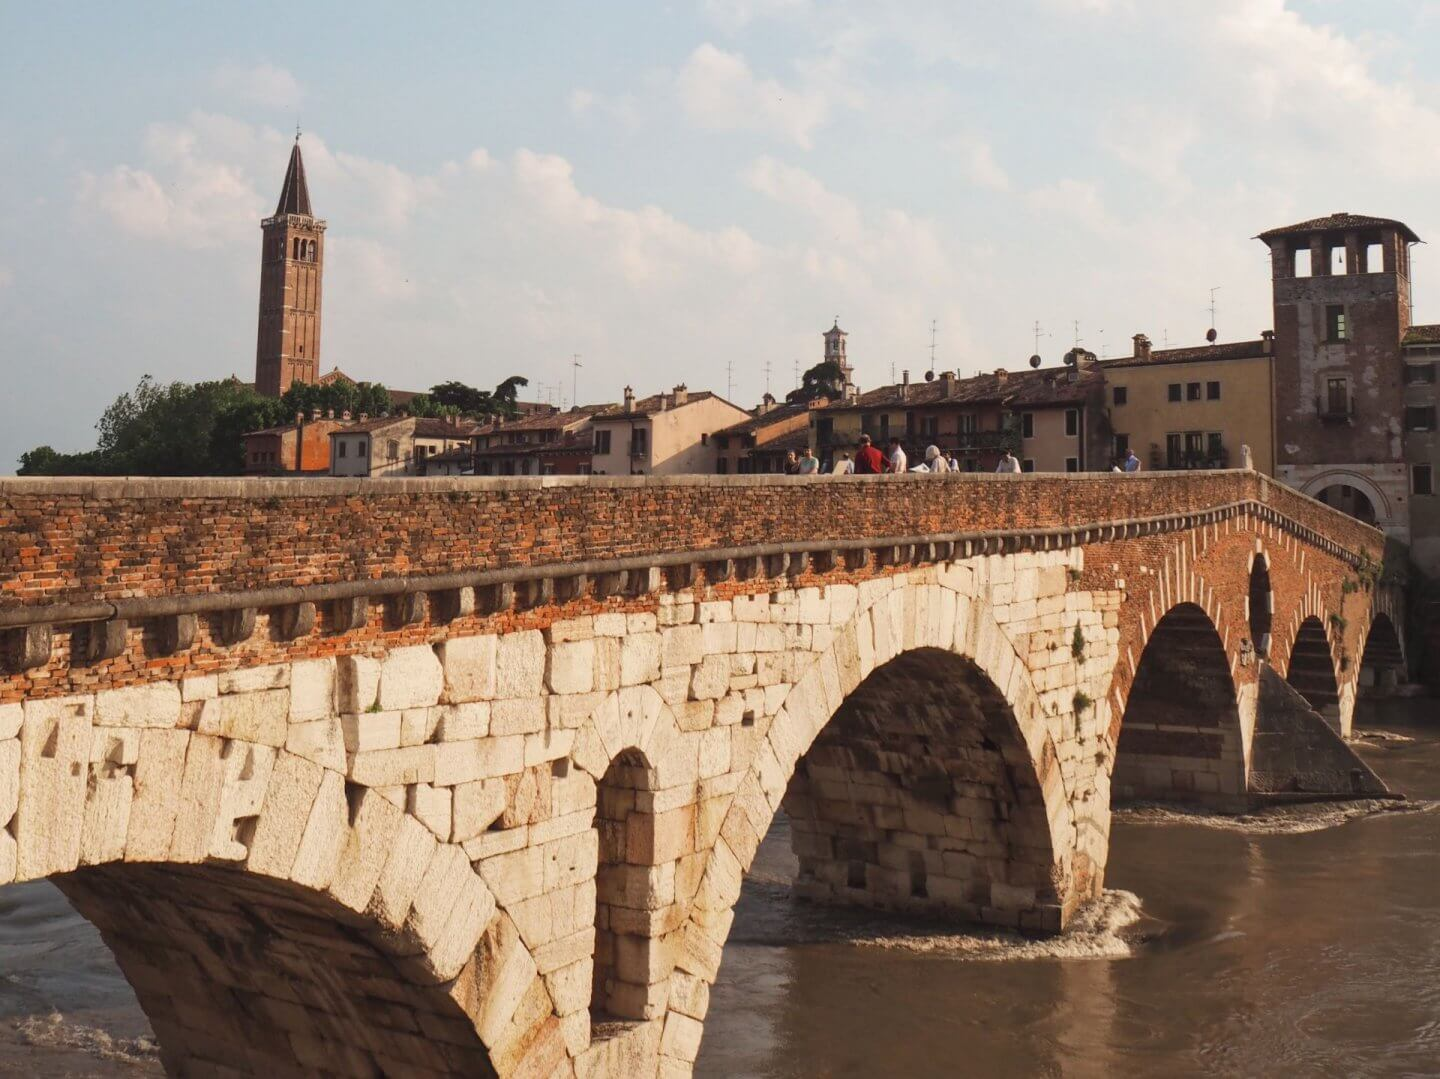 image of the city of Verona, on a day trip from 3 days in Venice,